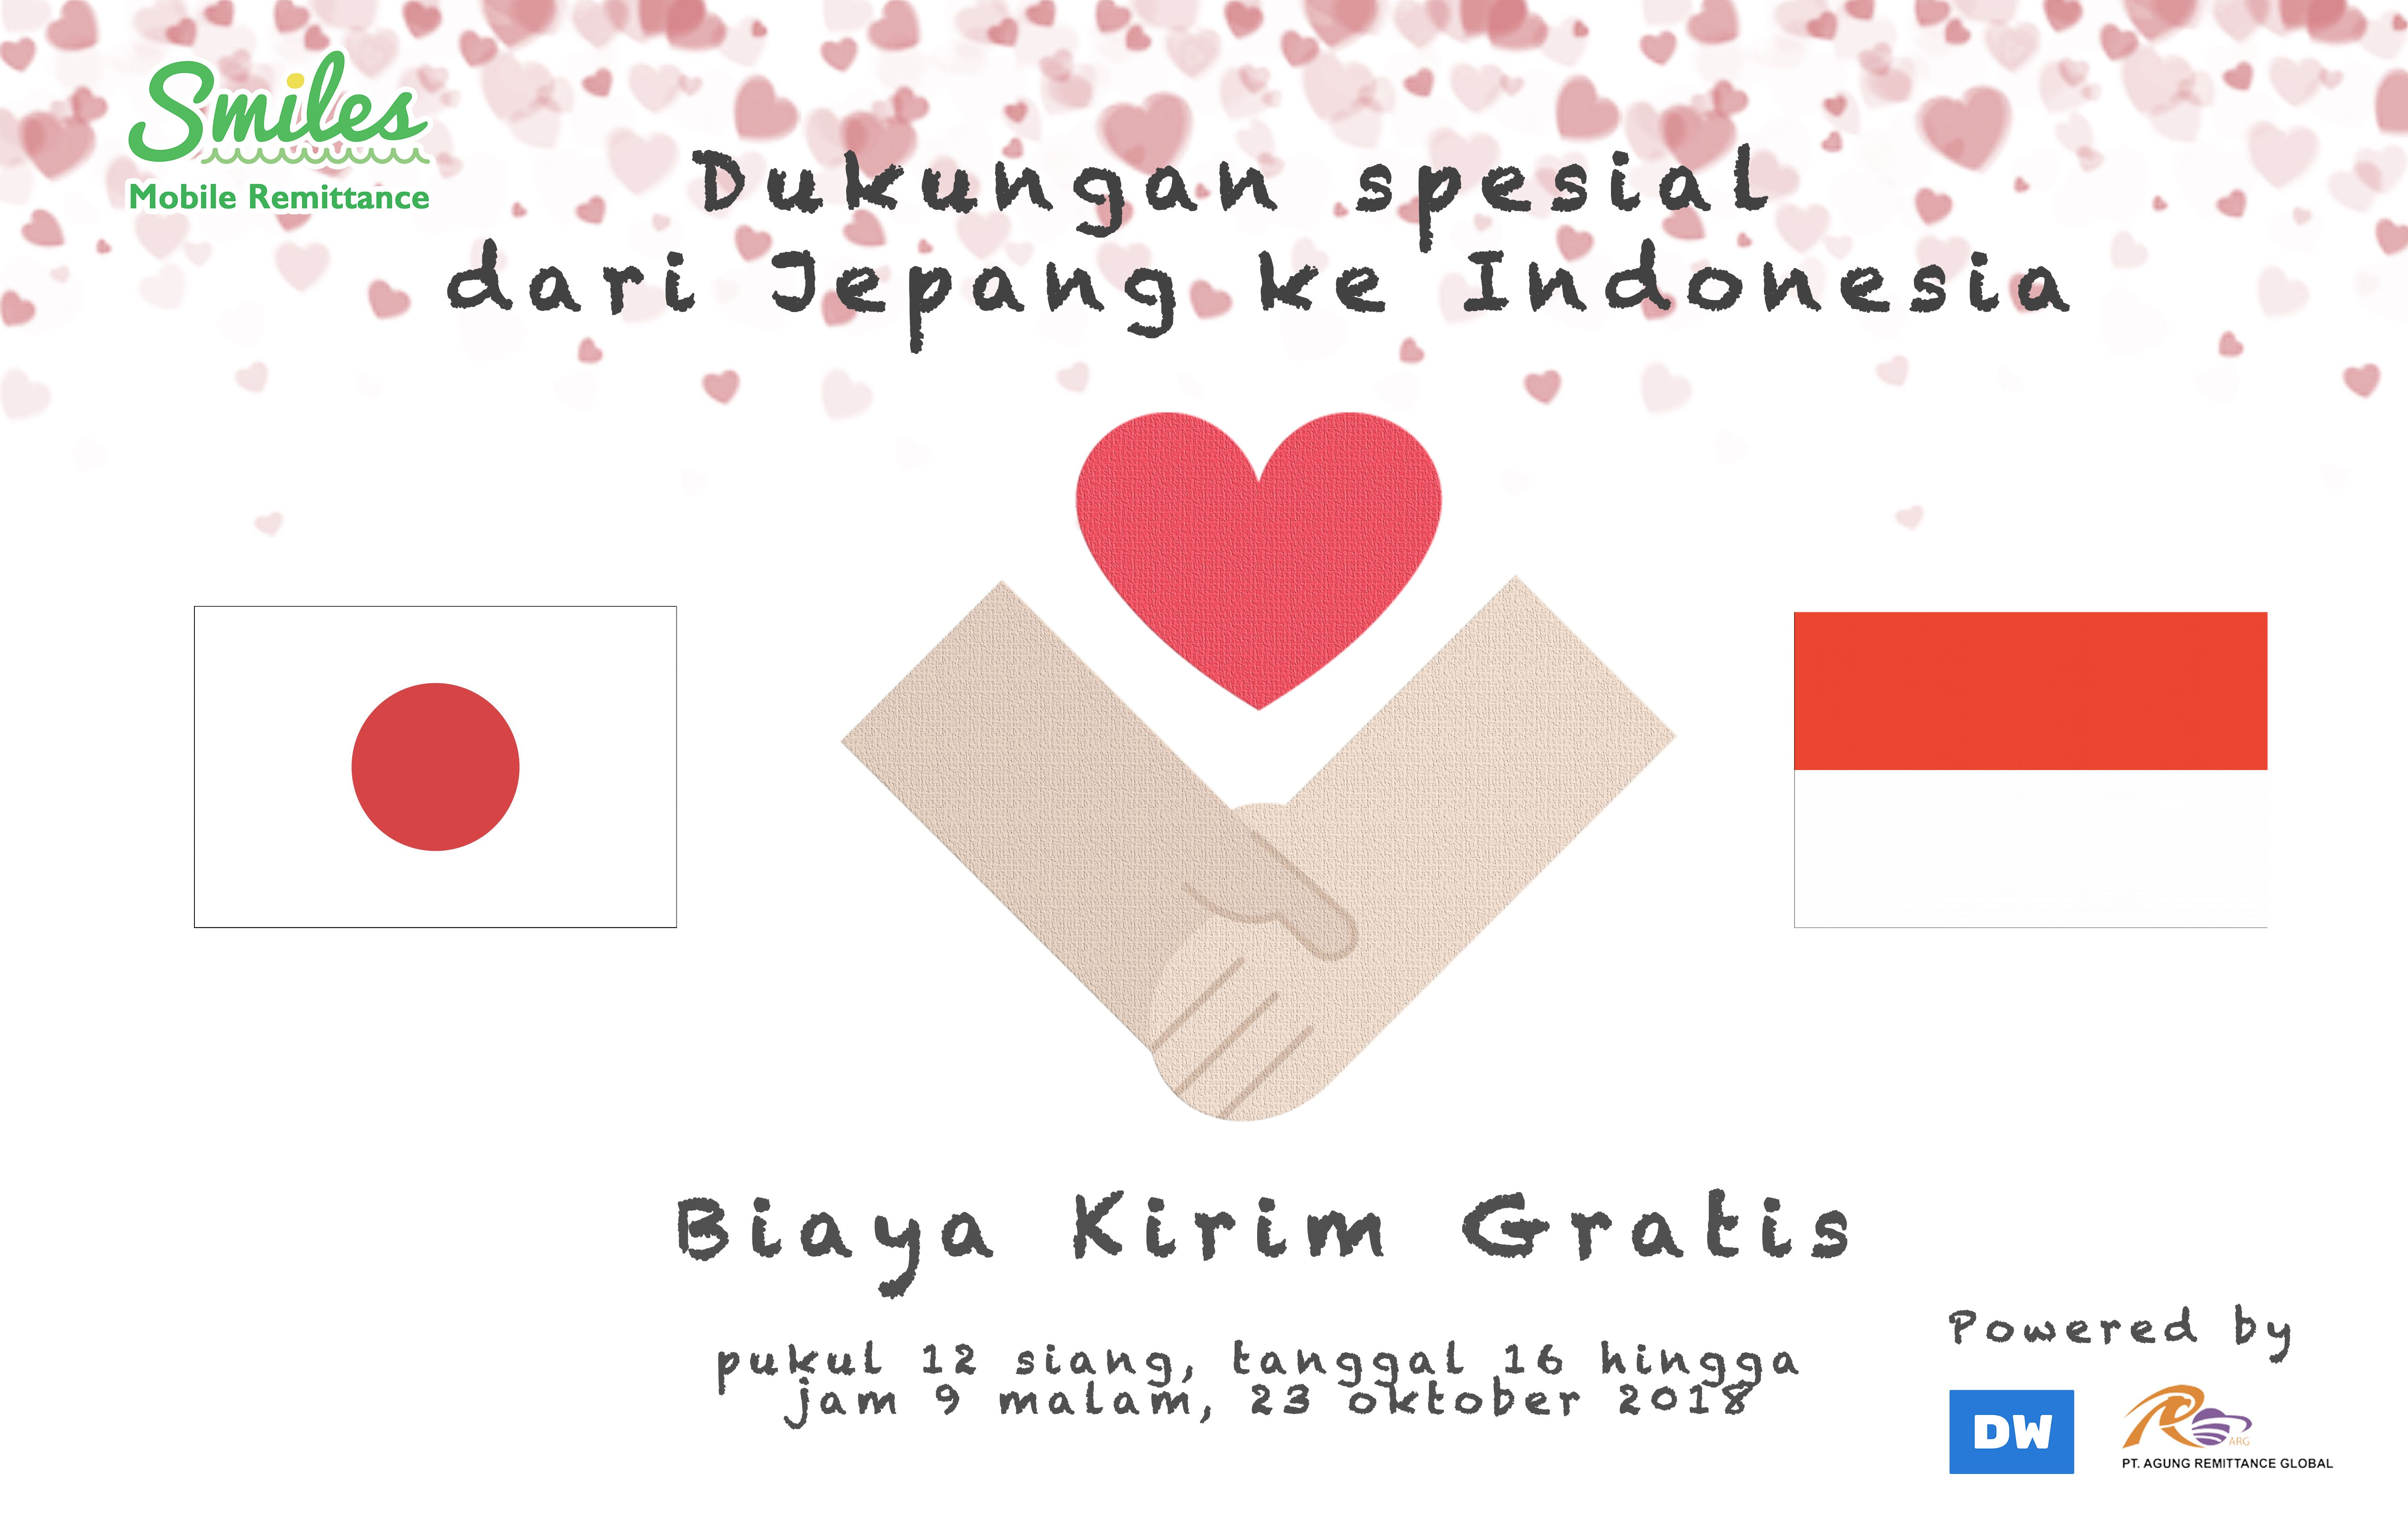 Special Support for Earthquake victims in Central Sulawesi, Indonesia